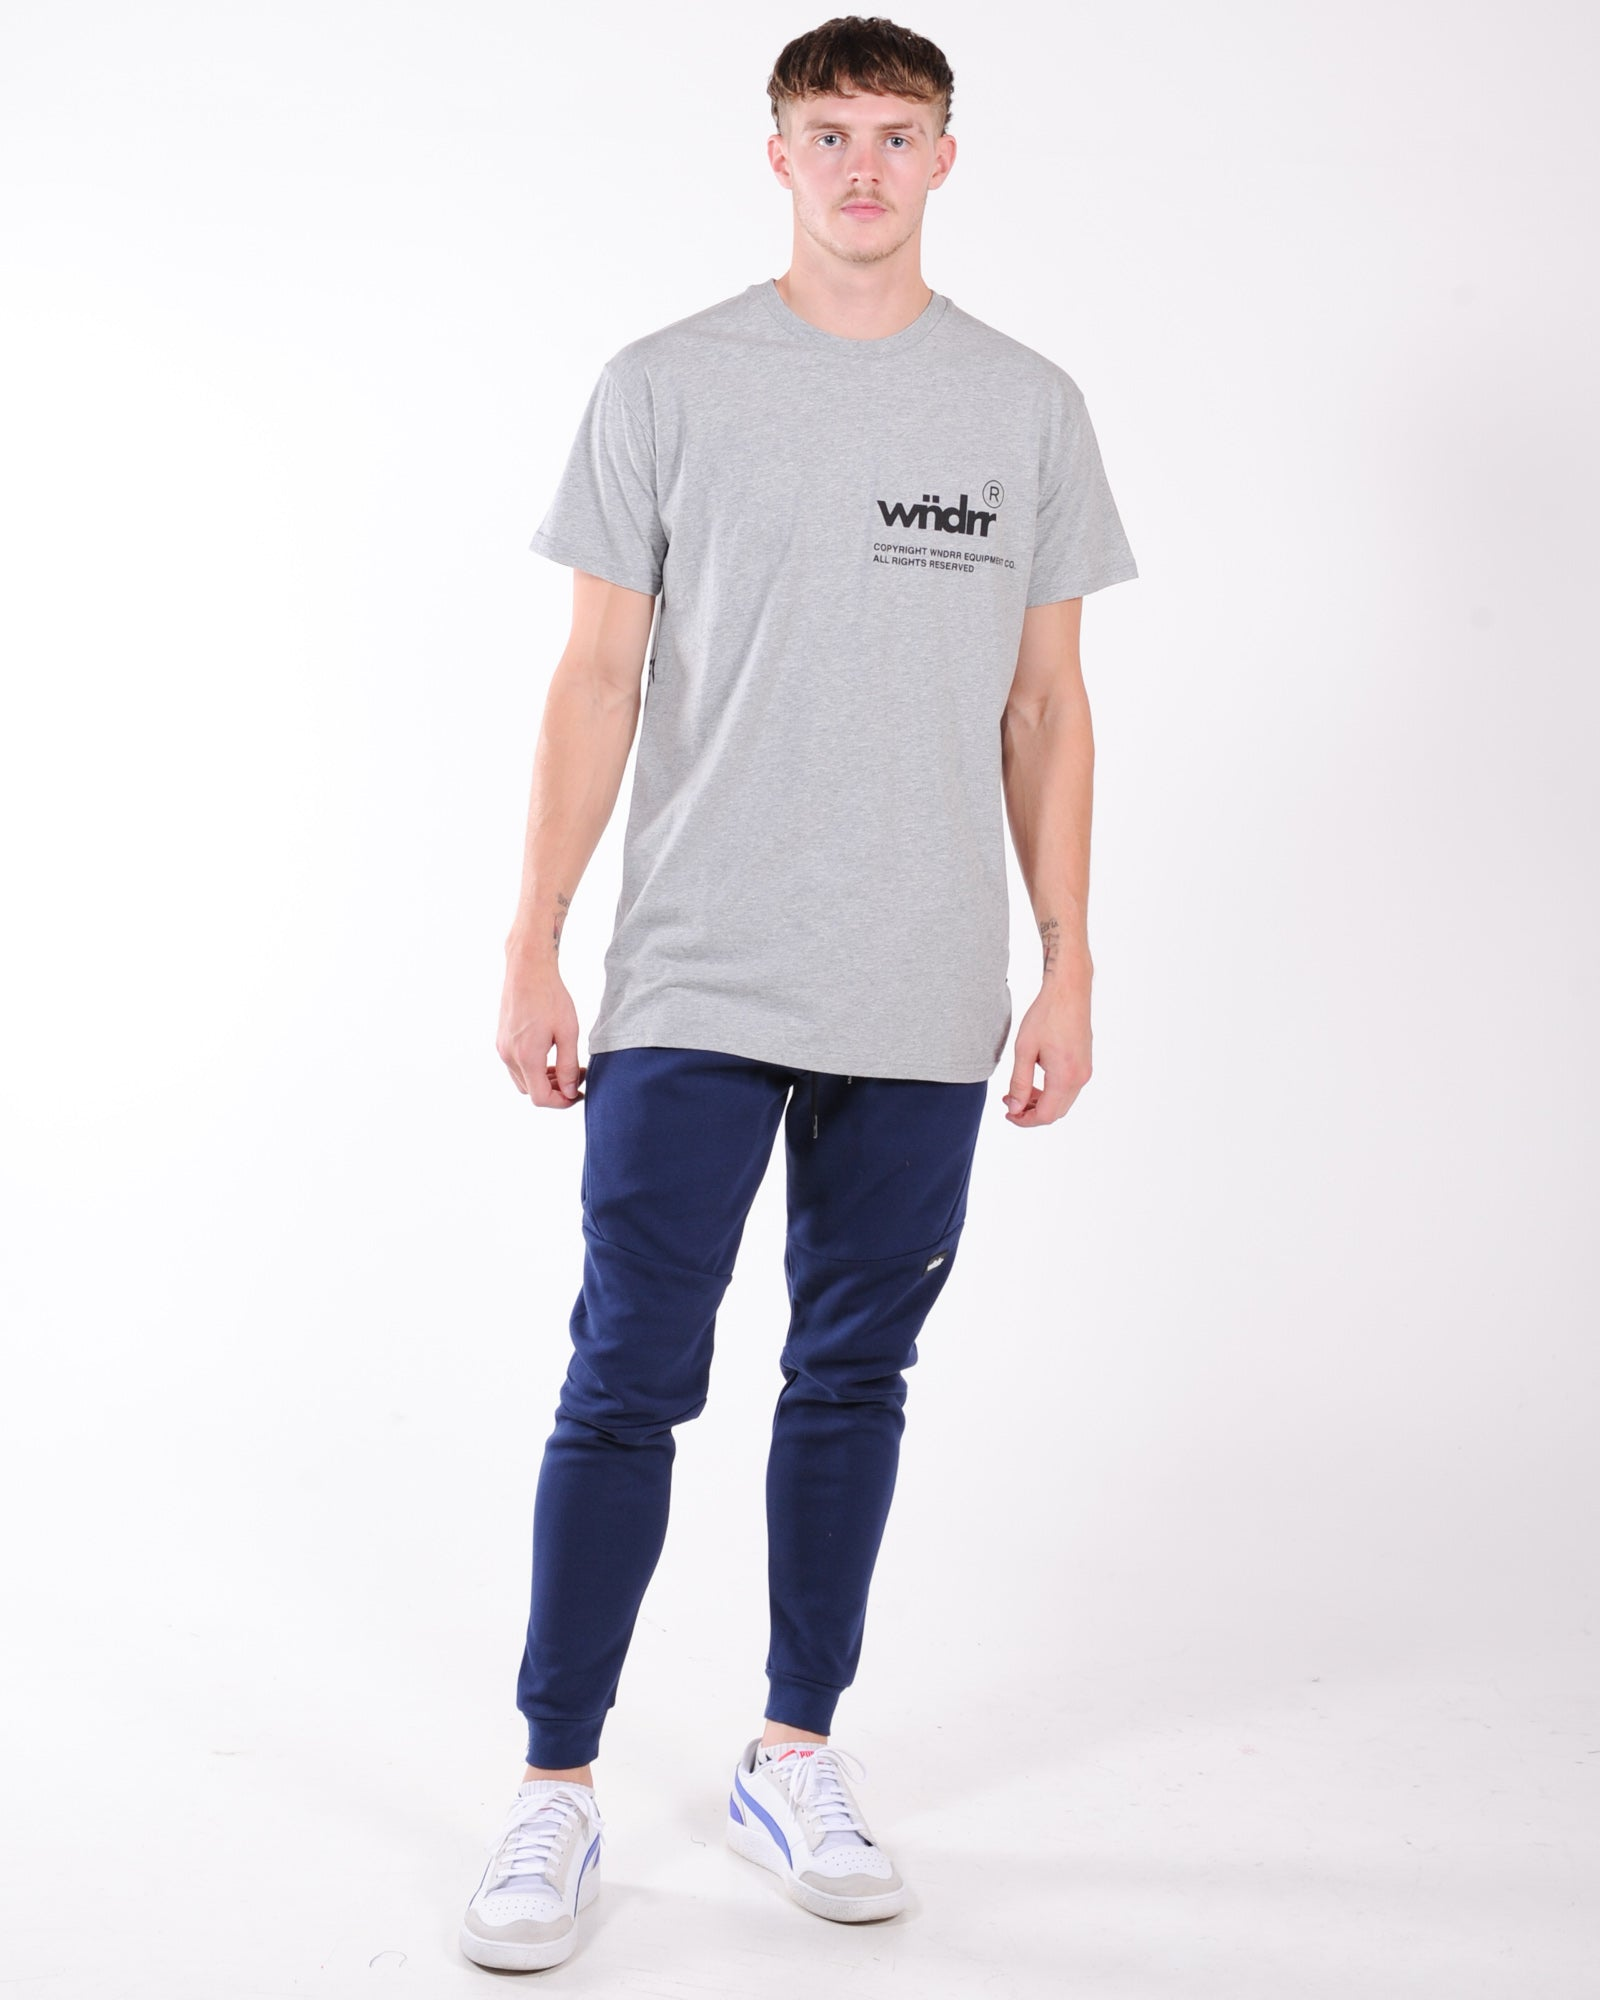 Wndrr Offcut Custom Fit Tee - Grey Marle